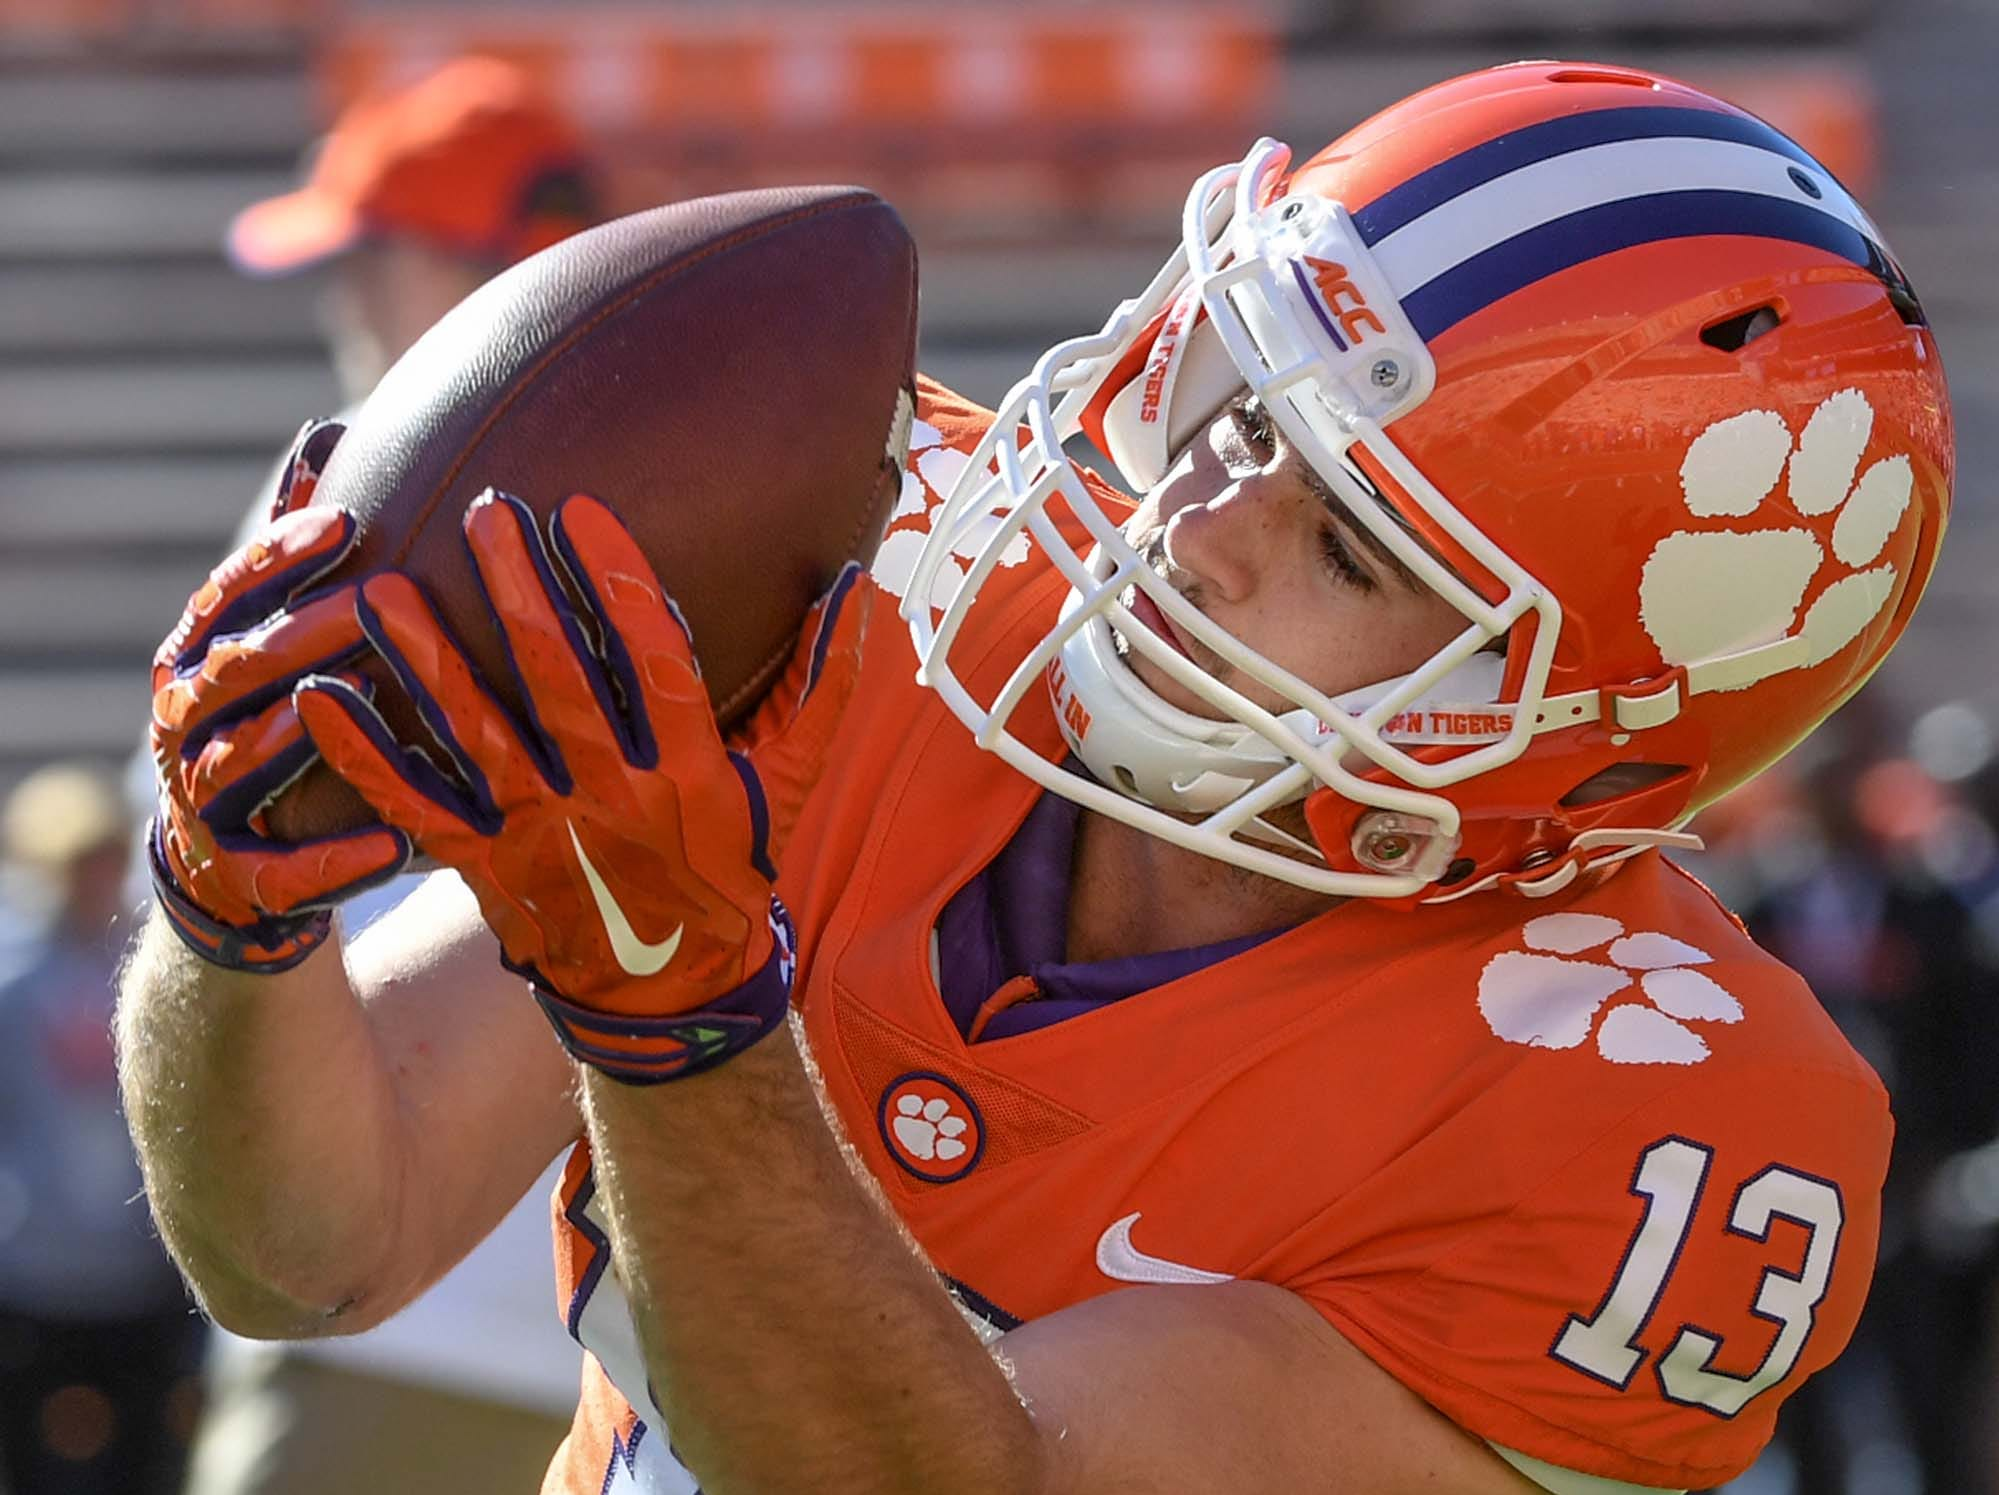 Clemson wide receiver Hunter Renfrow (13) warms before the Louisville game in Memorial Stadium on Saturday, November 3, 2018.